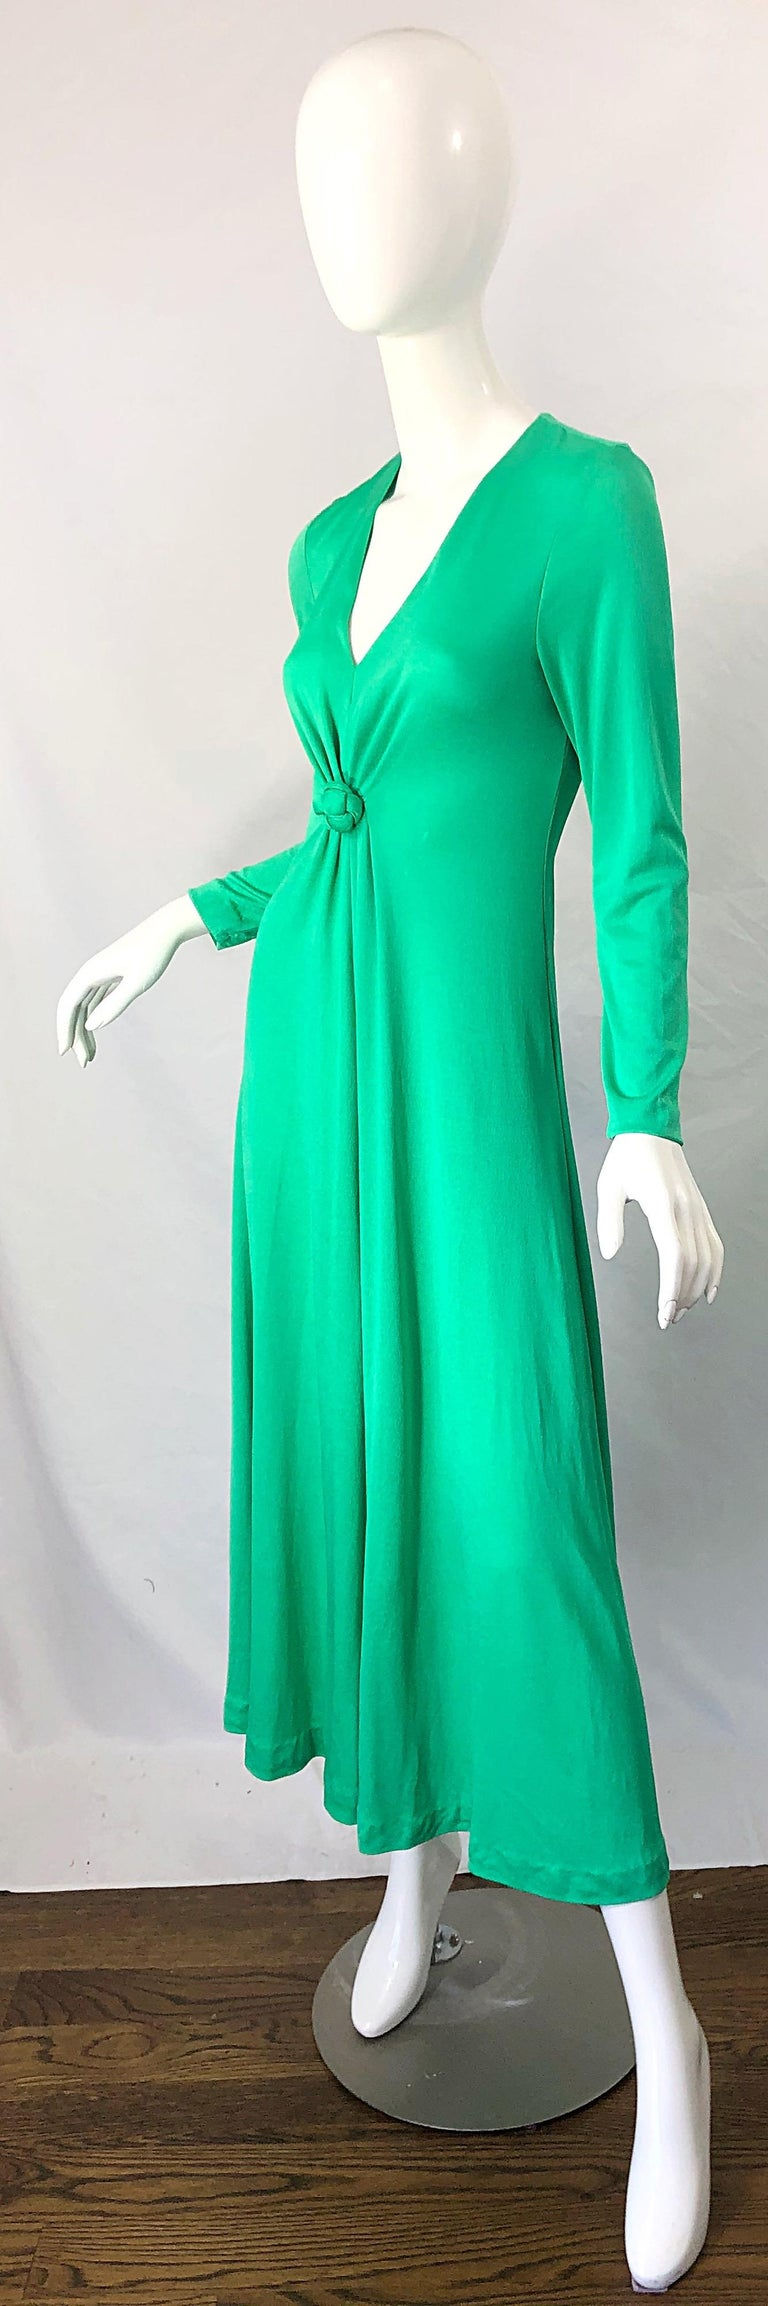 1970s Fredrick's of Hollywood Kelly Green Vintage Jersey 70s Maxi Dress For Sale 8